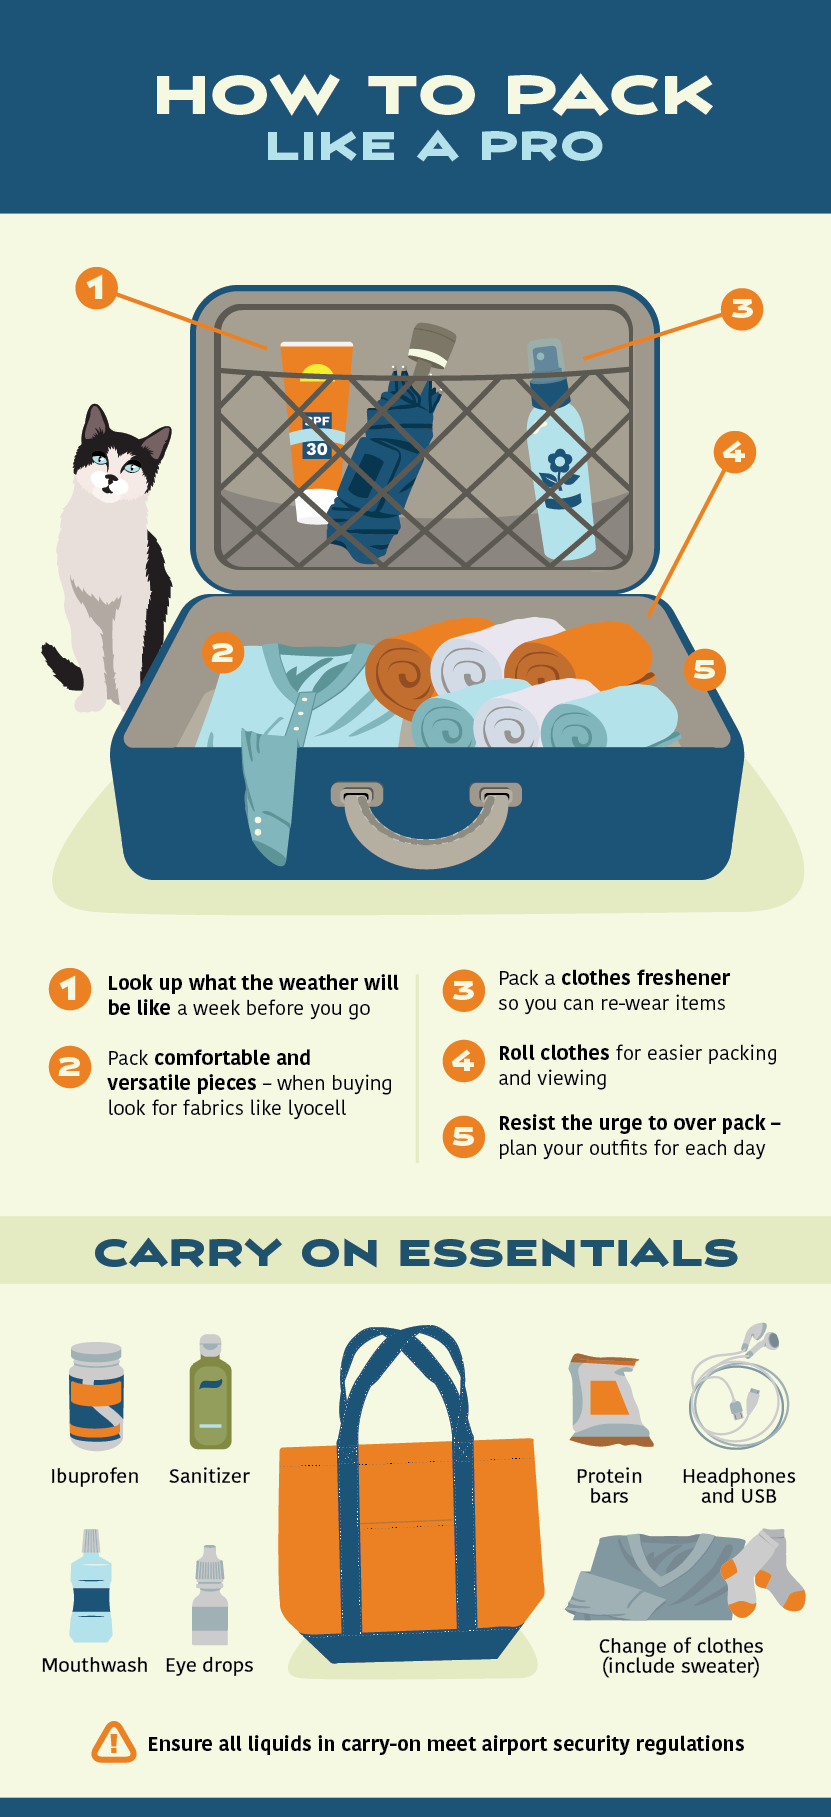 Packing Tips - How to Plan a Healthy and Happy Vacation